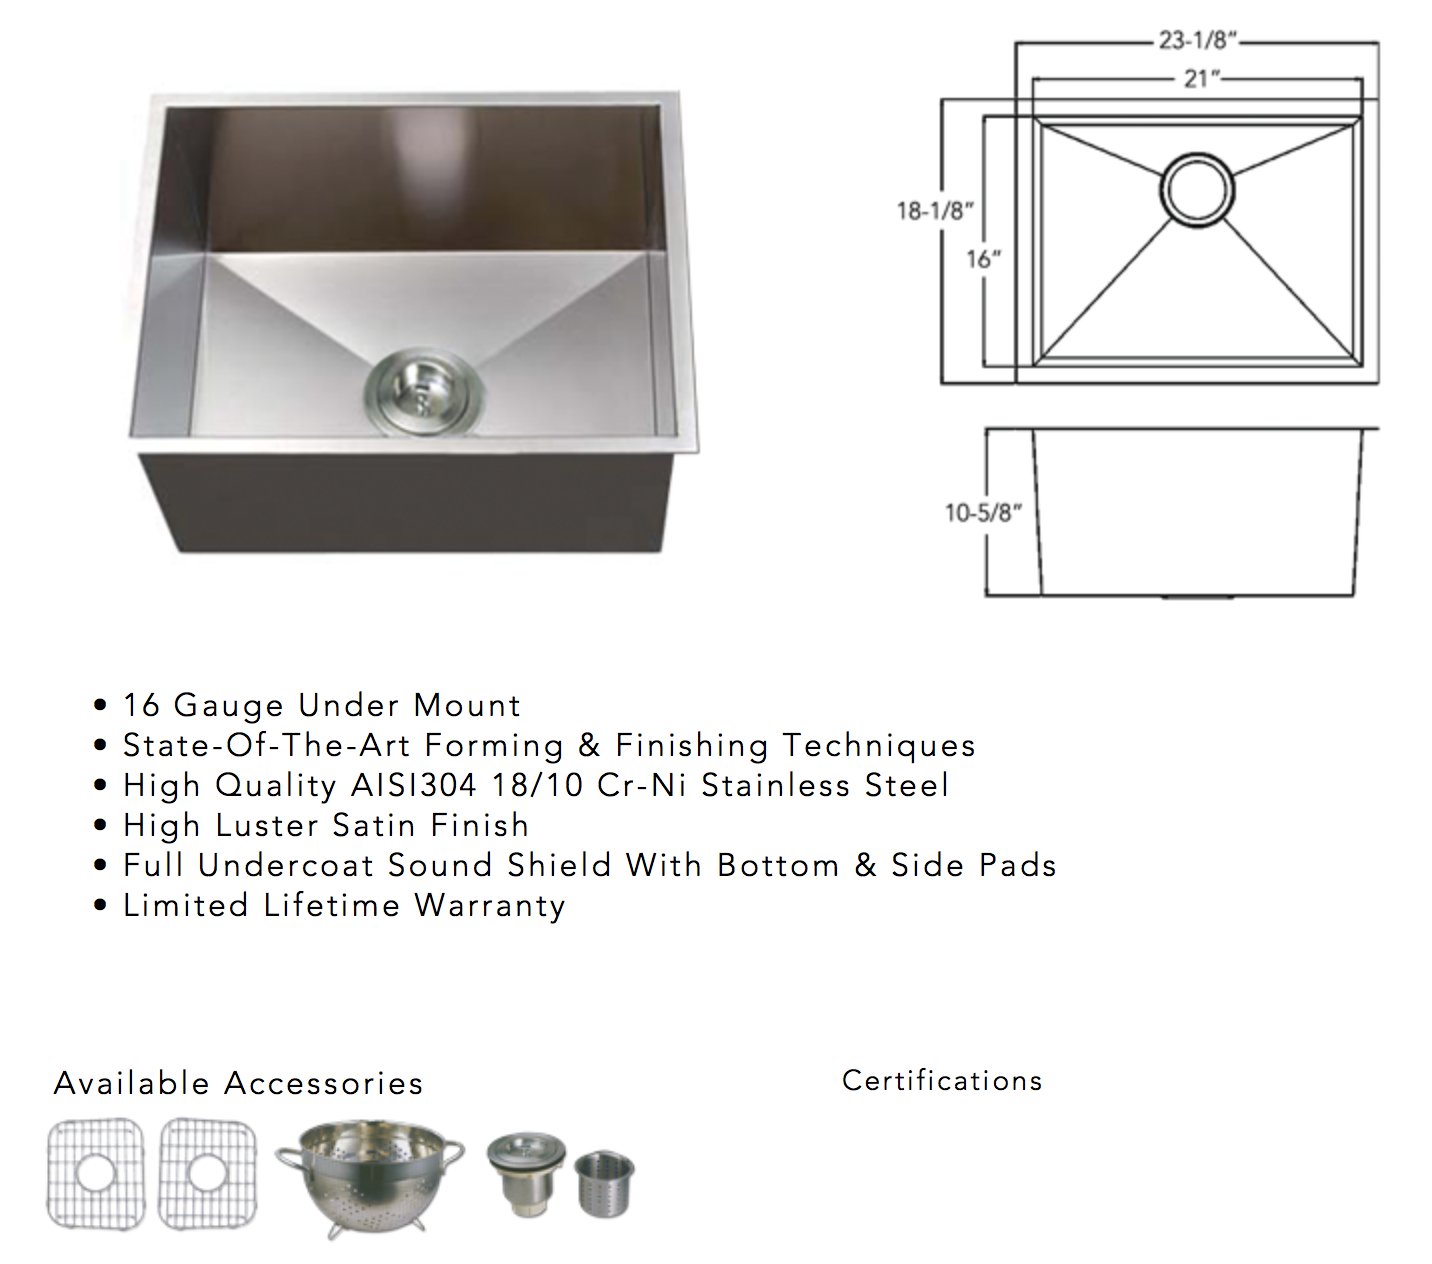 image of square stainless steel sink